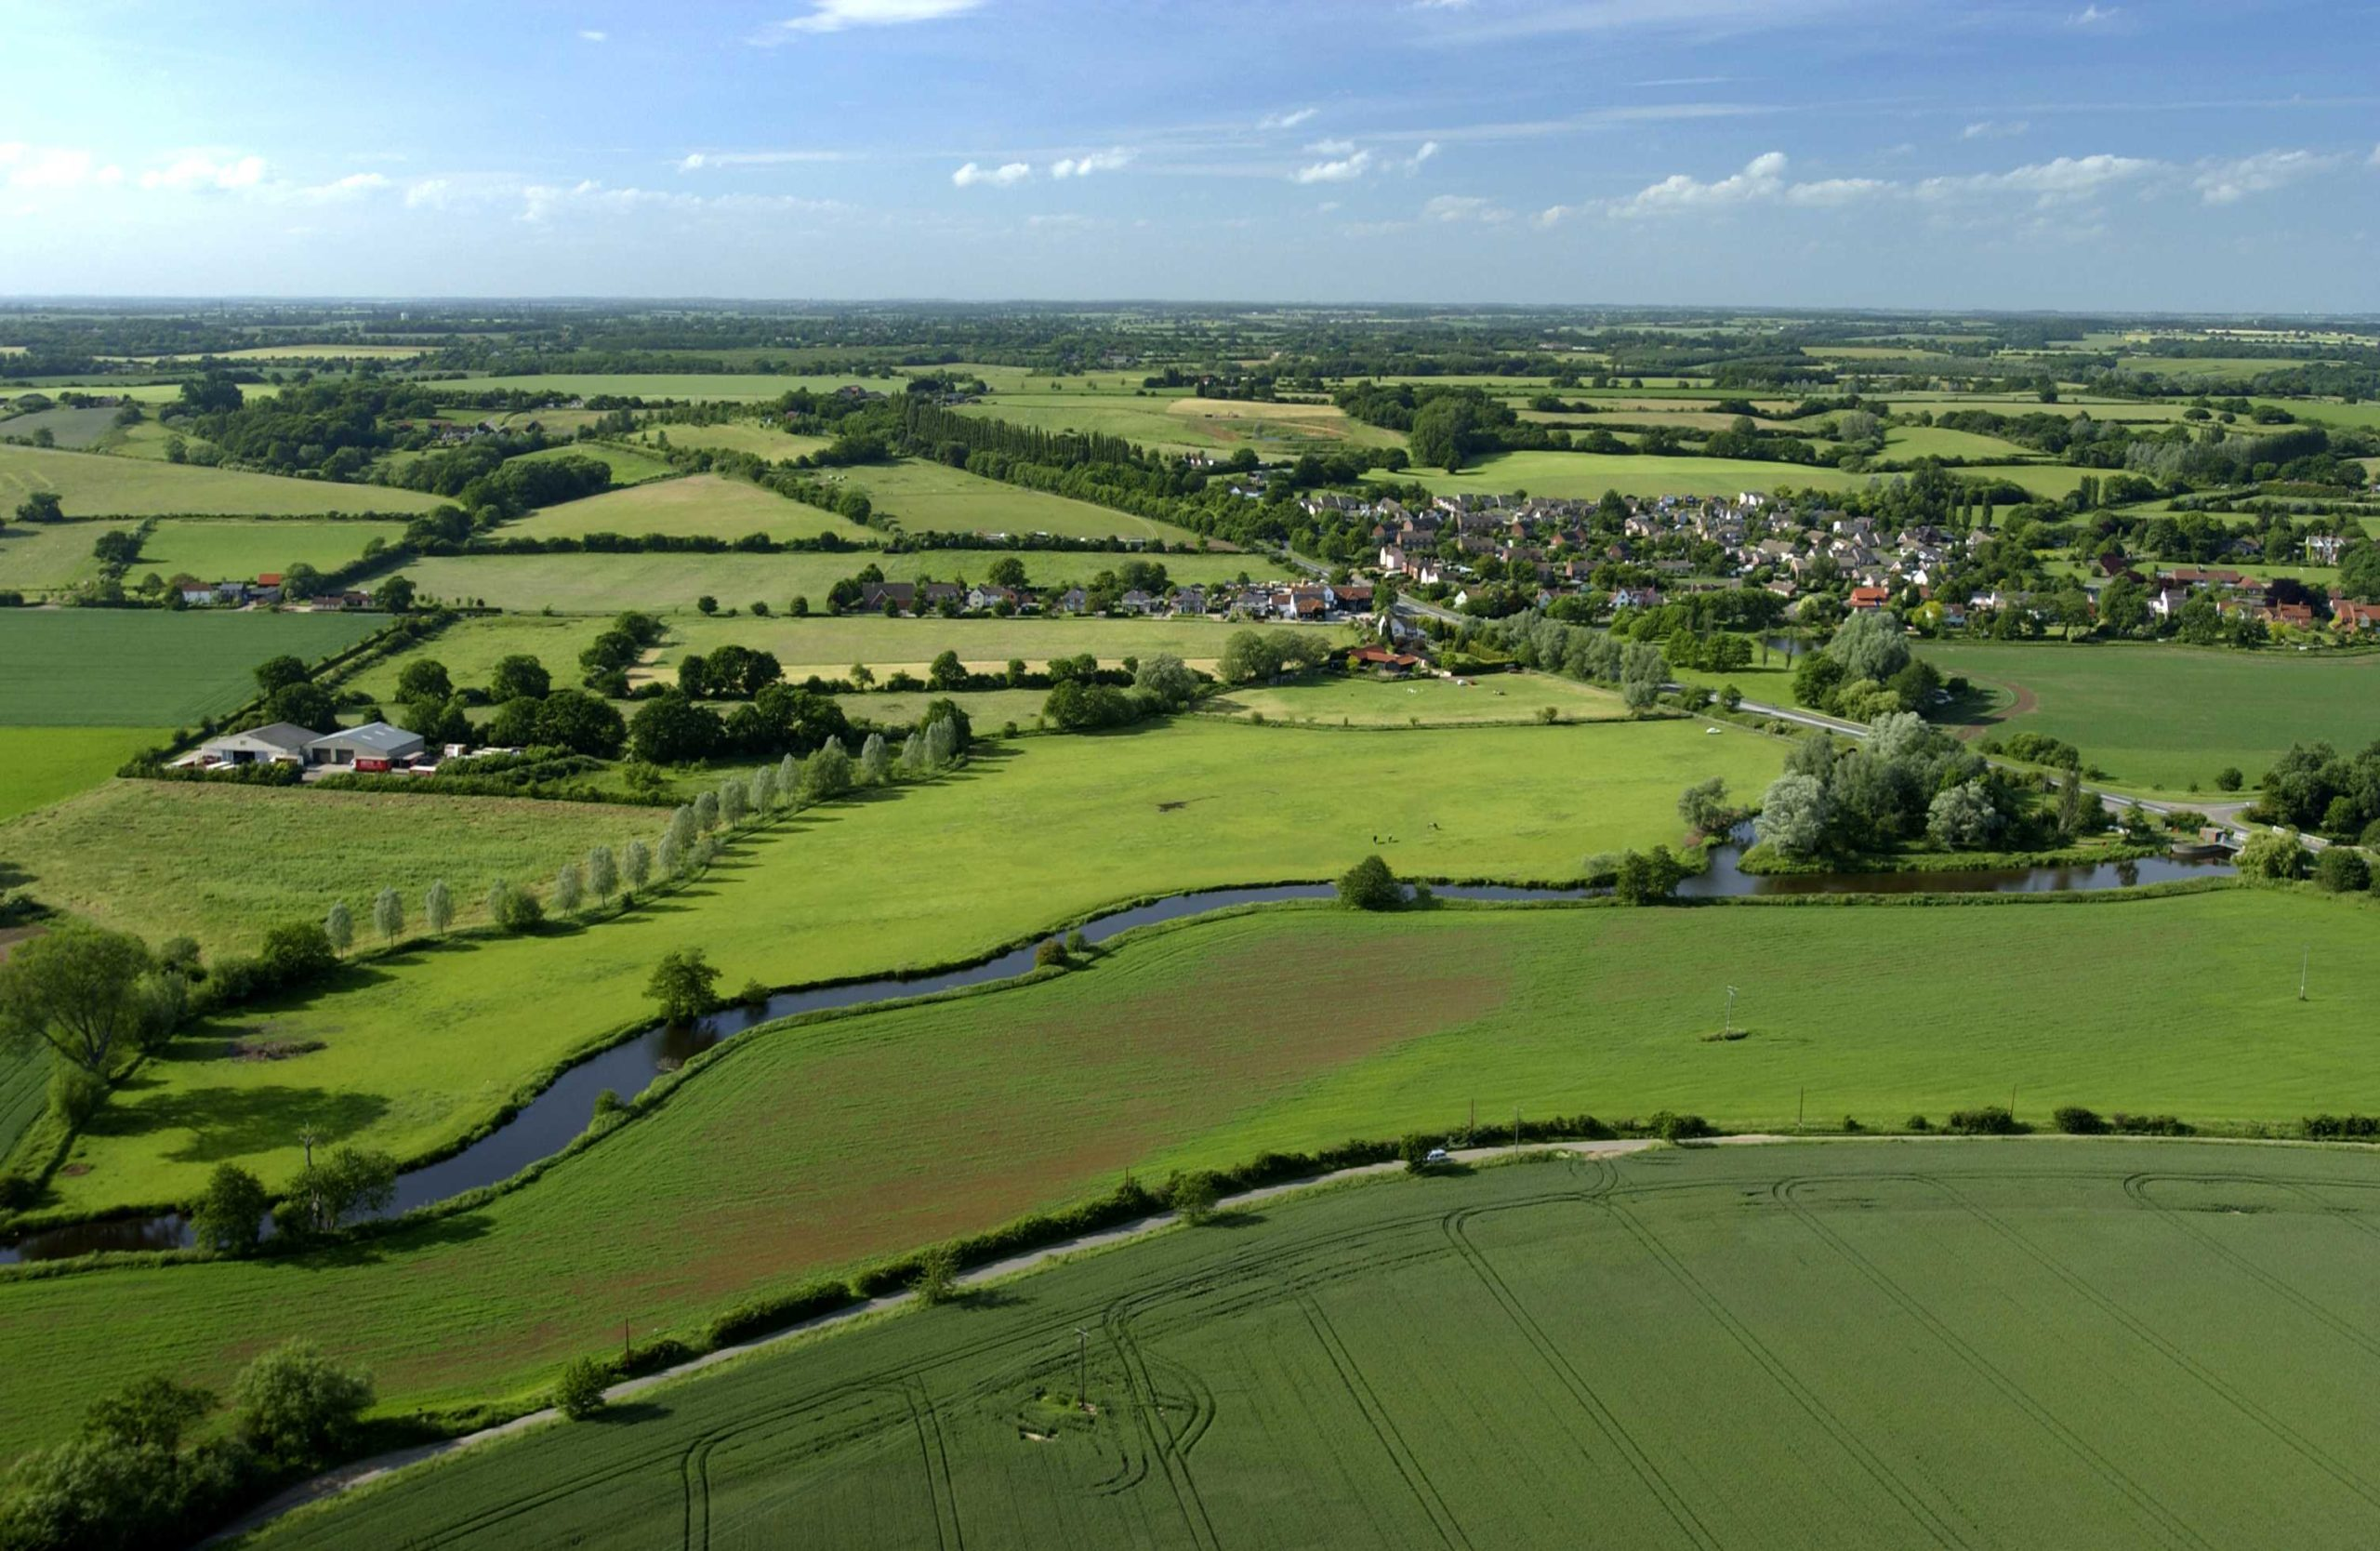 A photo of rural landscape from Nayland looking north